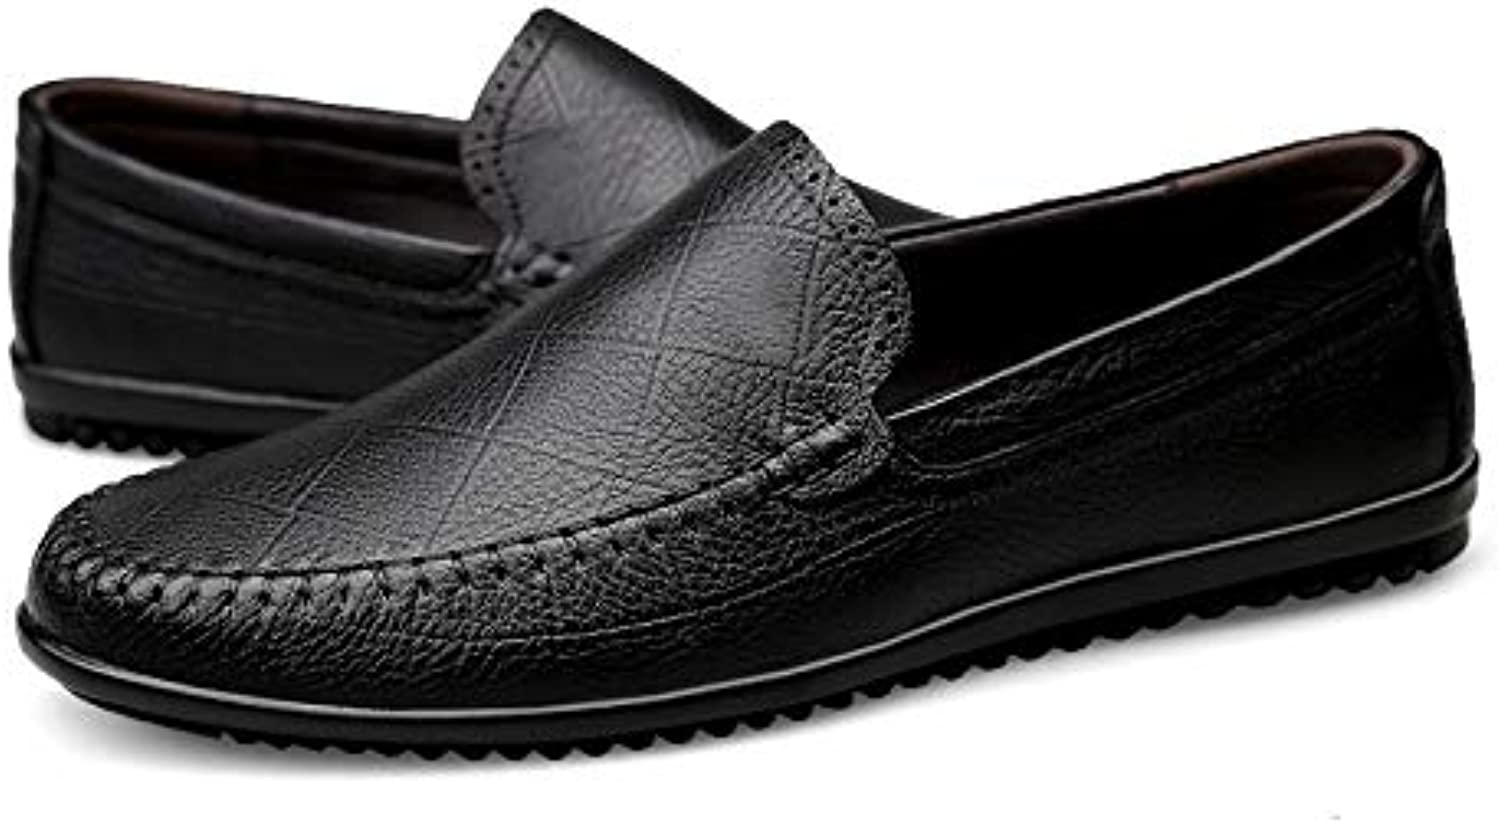 HAWEEL Leather Formal Dress shoes, Round Head Wear Resistant Solid color Casual shoes for Men (color Black Size 36)